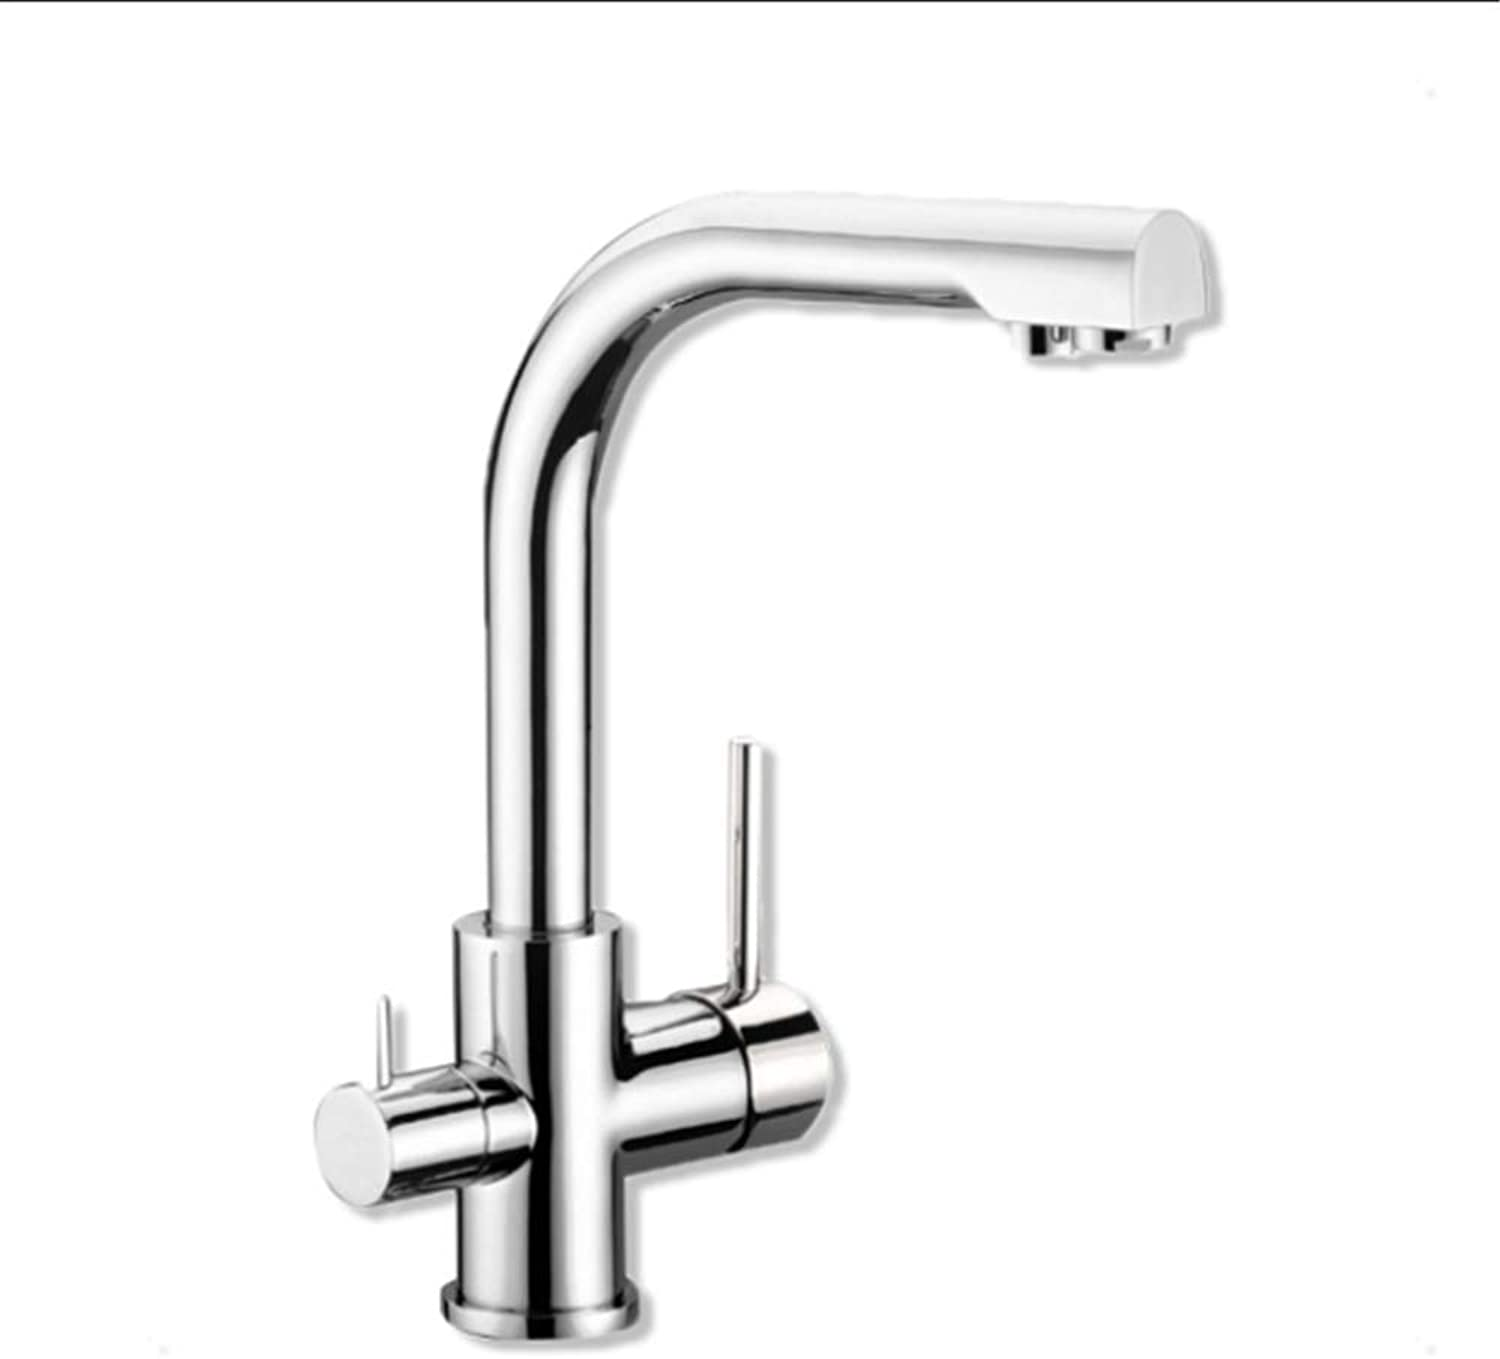 All Copper Kitchen Cold and hot Faucet wash Vegetable Basin Faucet Sink Water Nozzle Dual Purpose Kitchen Faucet